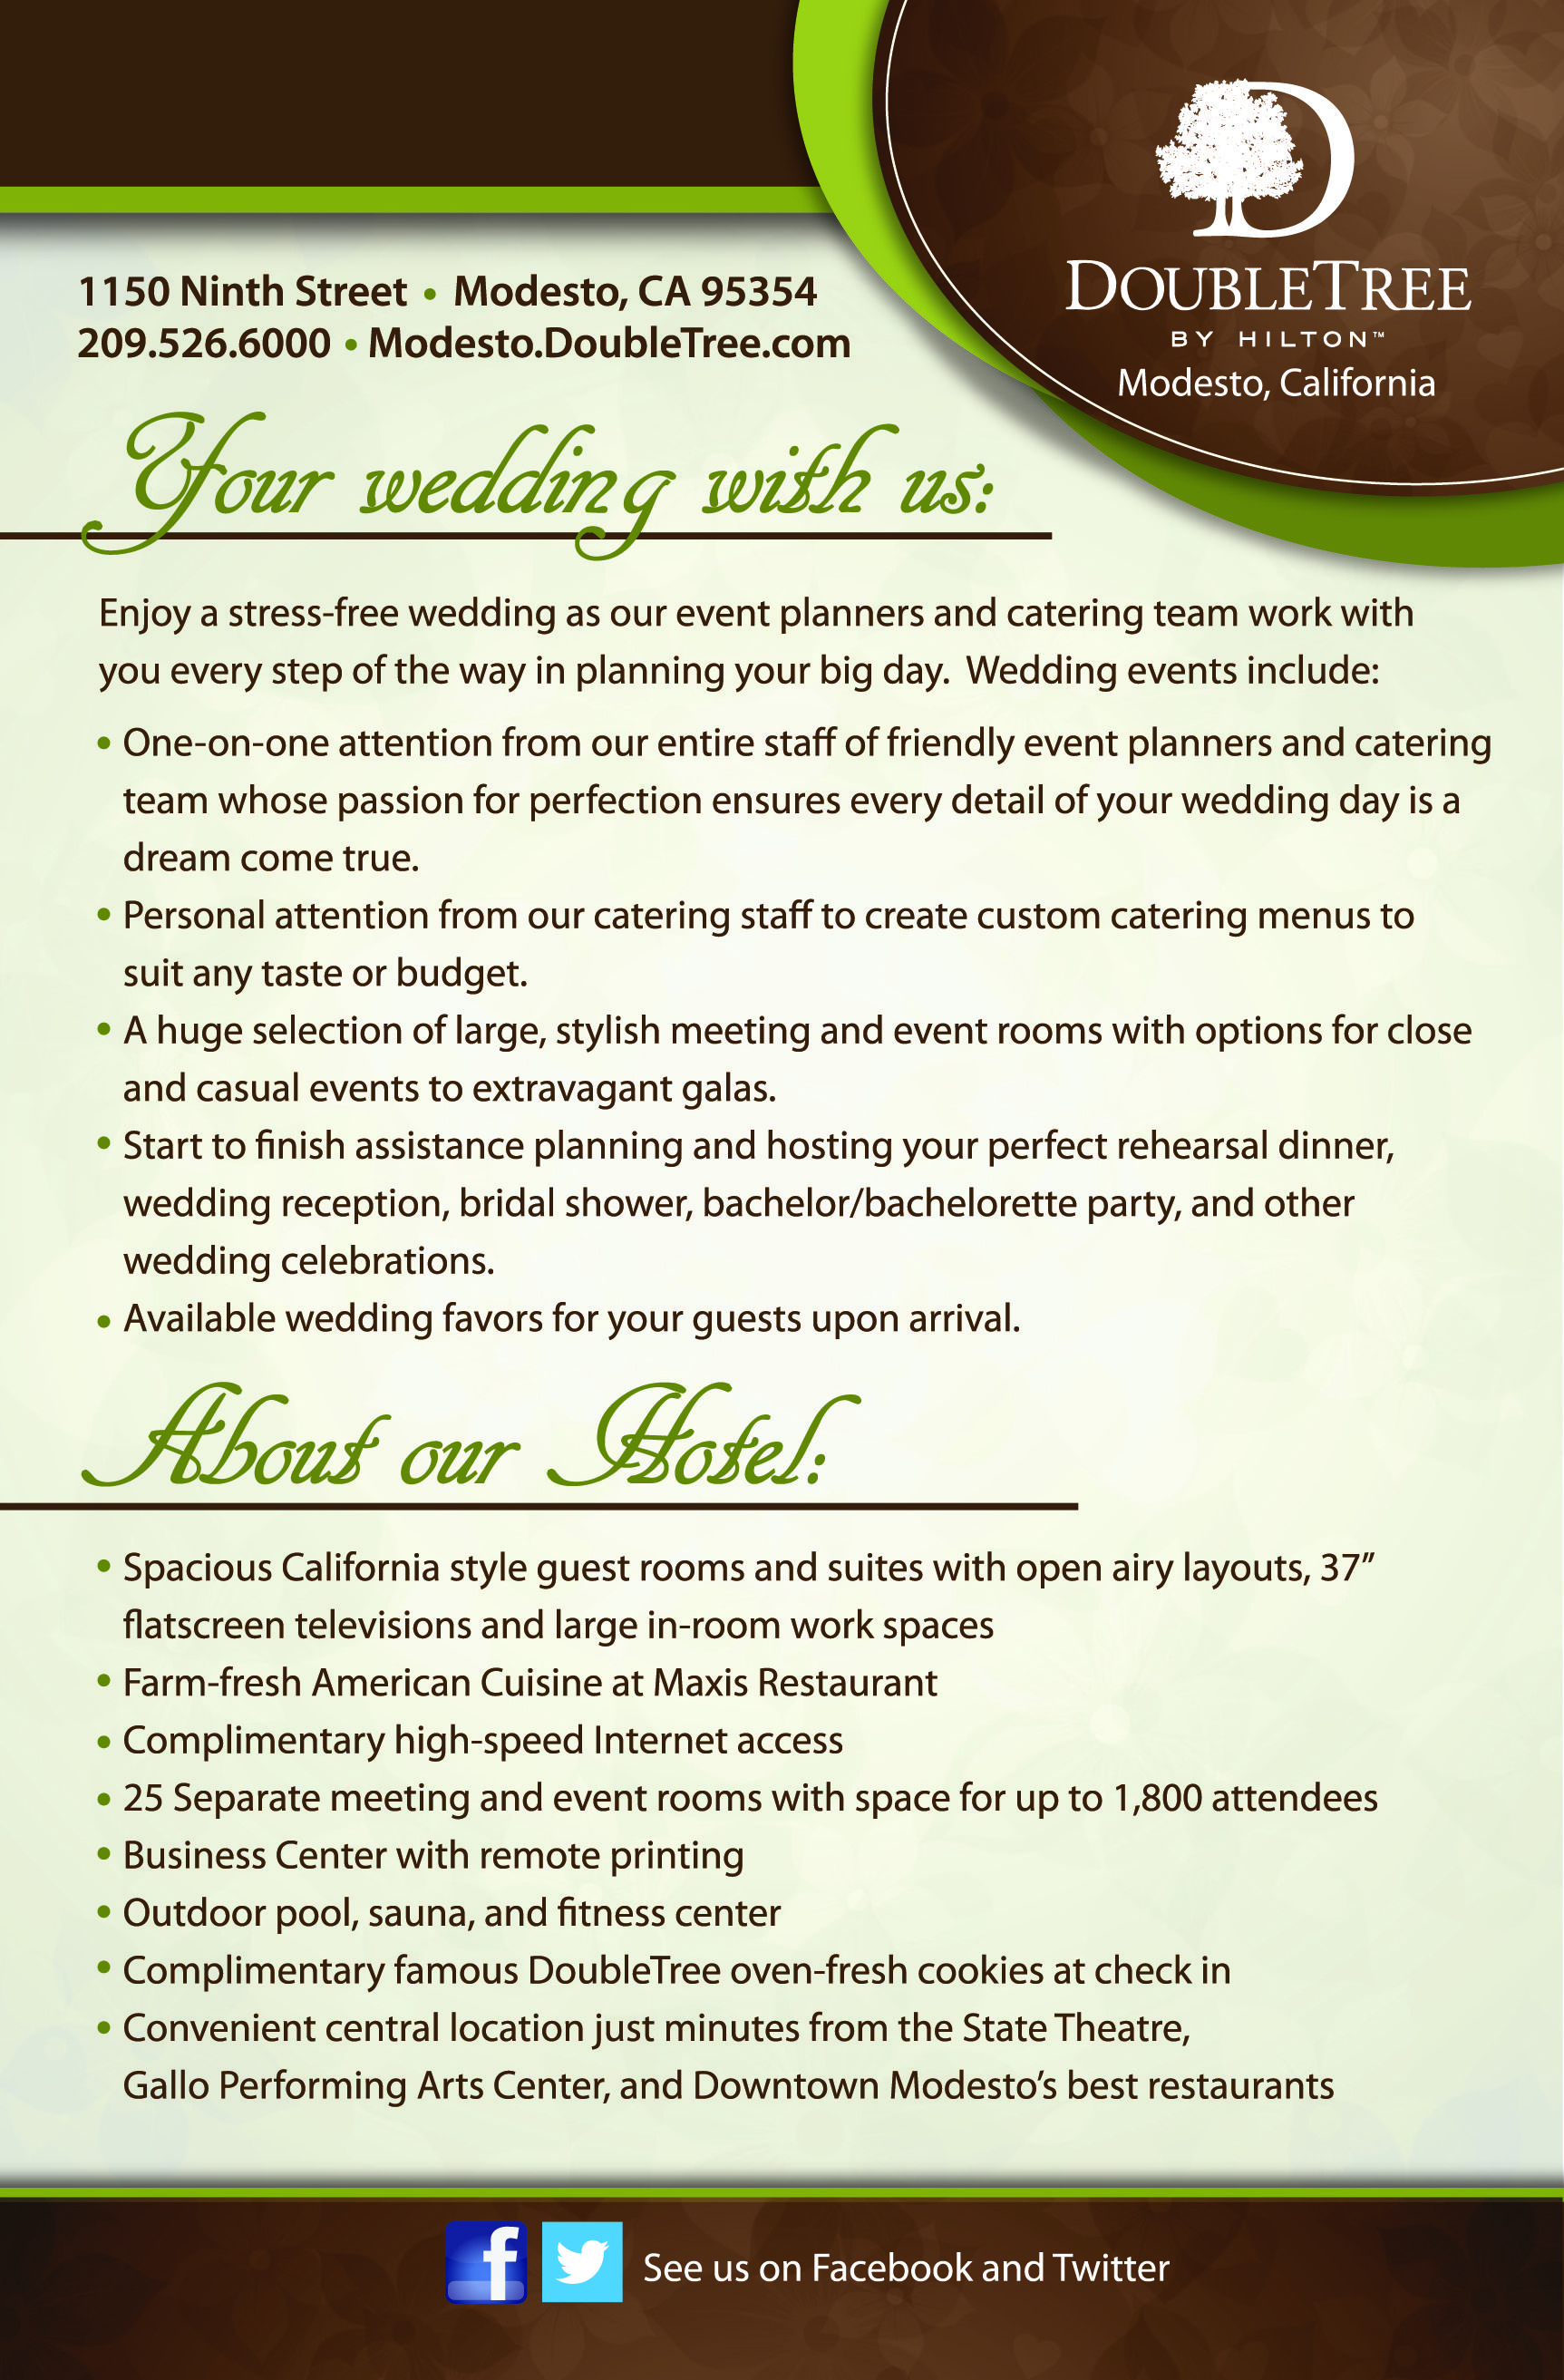 Wedding Flyer Back View Designed For The Doubletree By Hilton